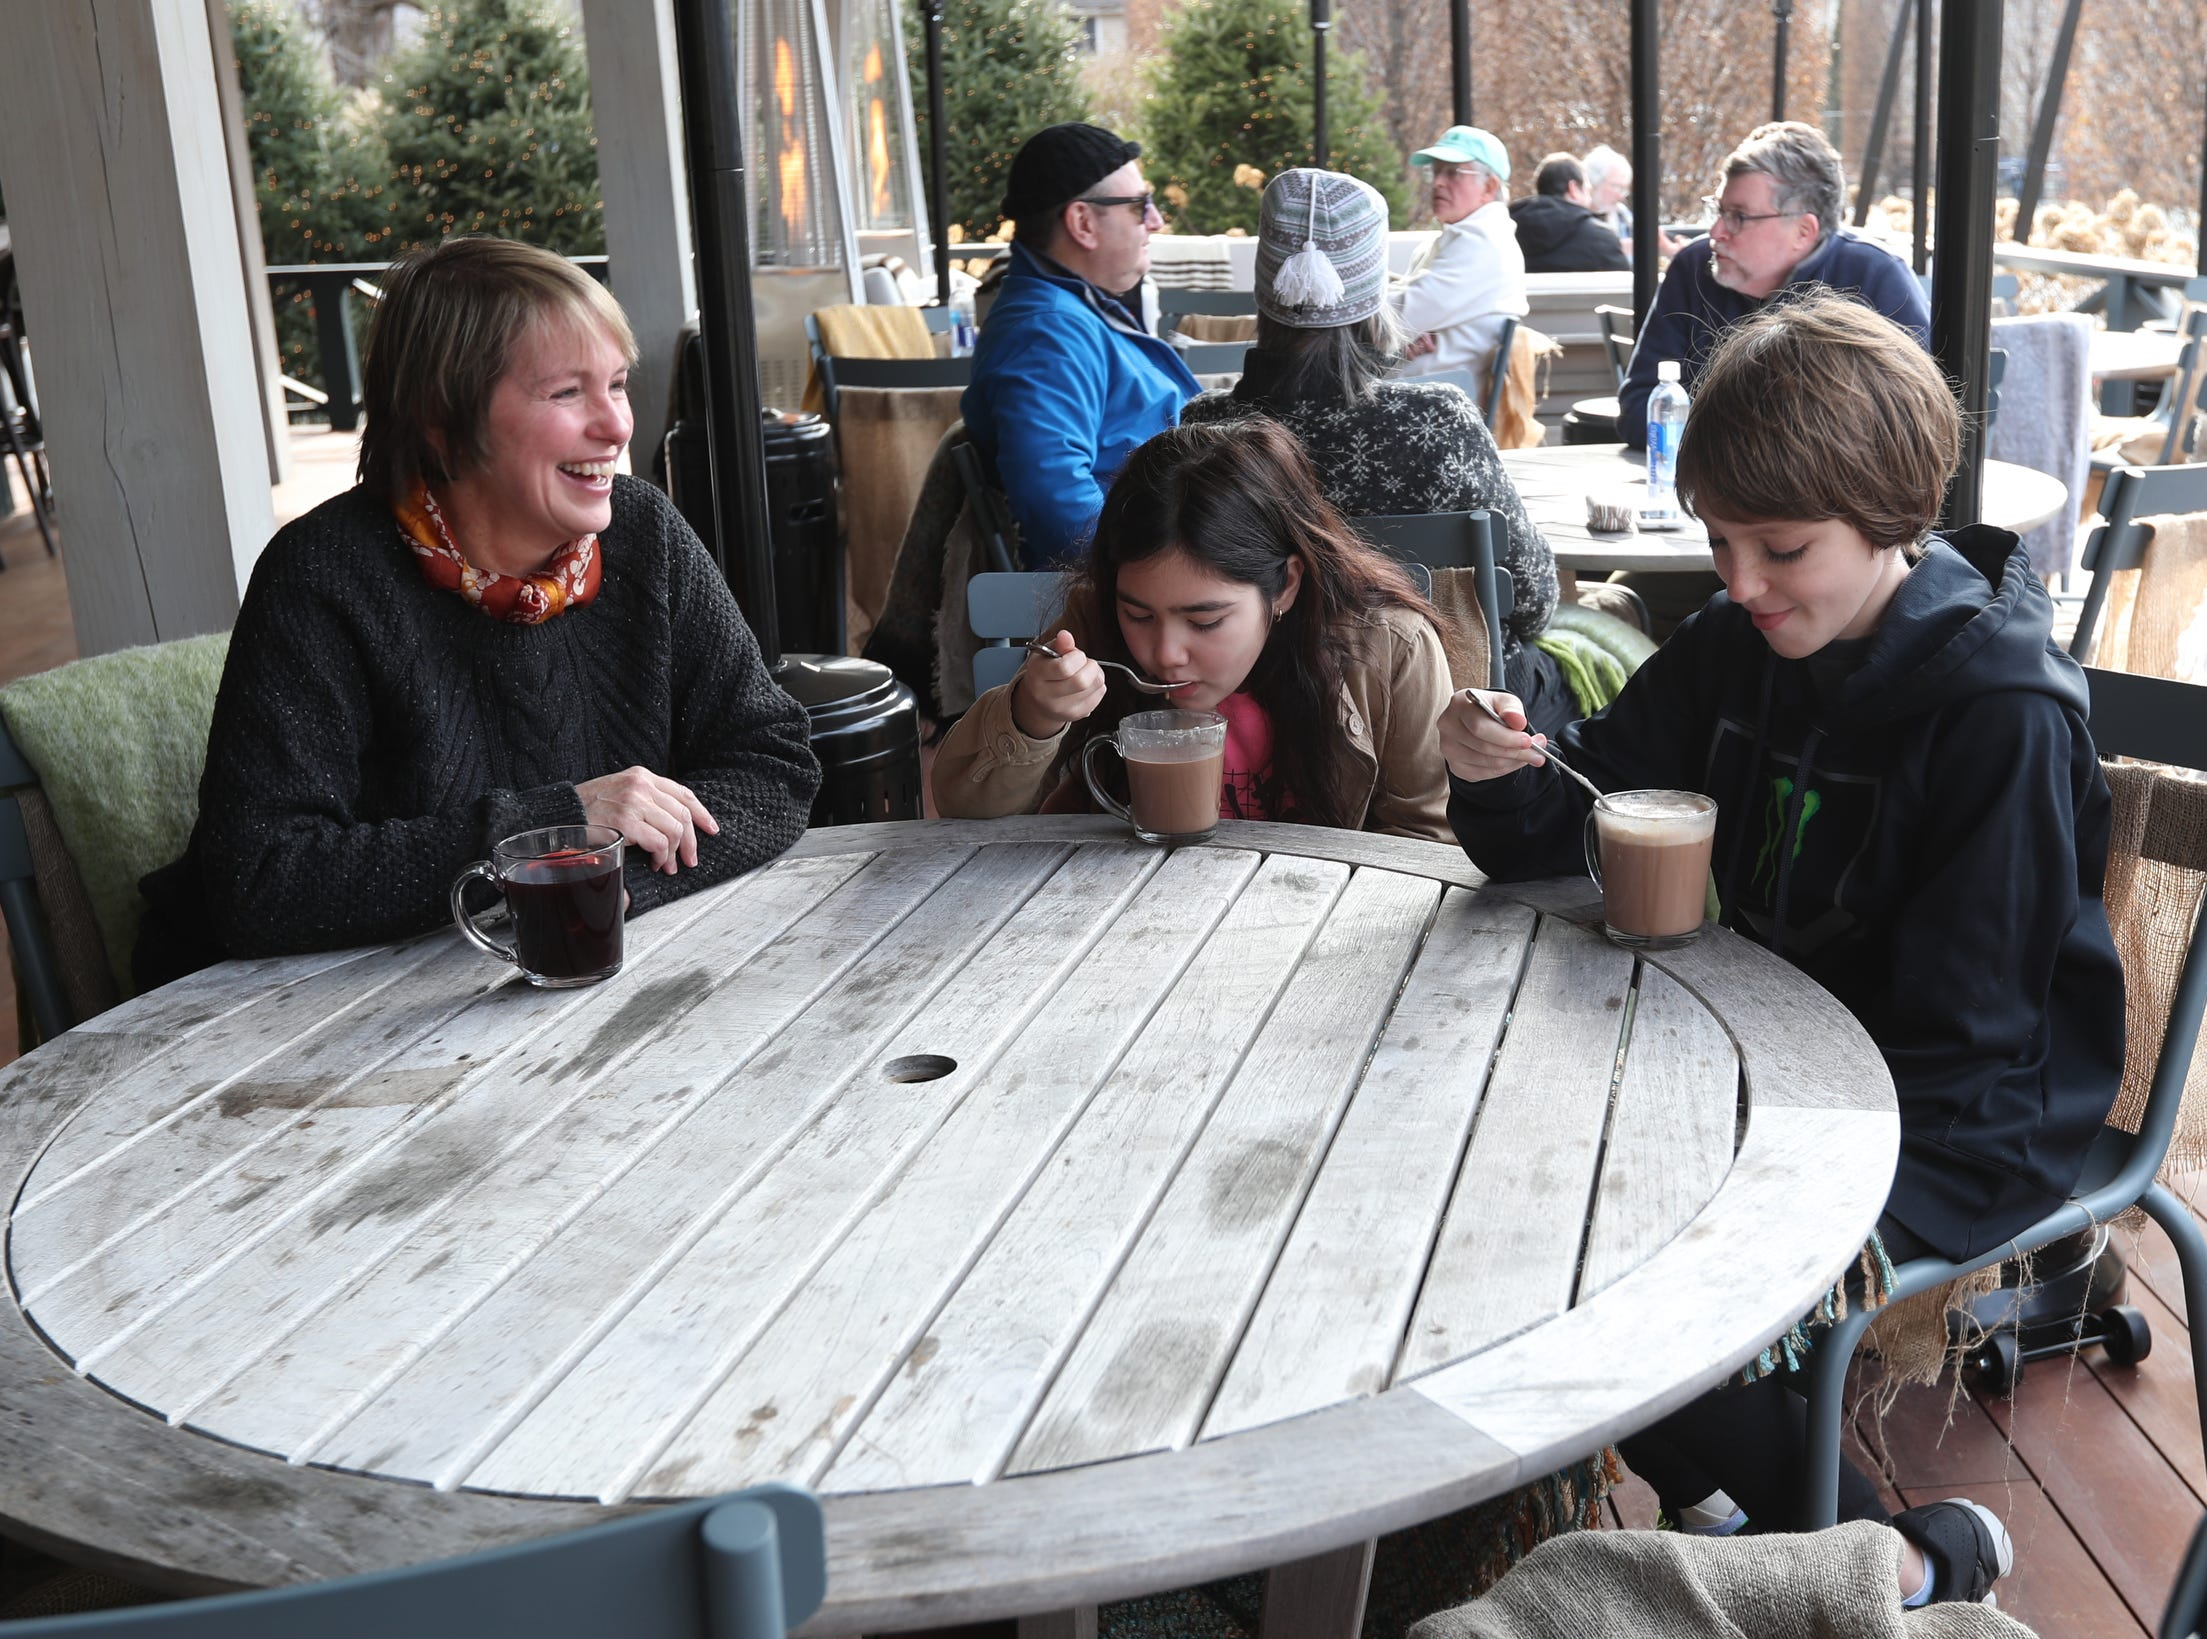 Kelly Spranger, left, of Tuxedo with Kylie Arcuni and Chris Ahart enjoy an afternoon at the Valley Rock Inn & Mountain Club in Sloatsburg on Saturday, January 12, 2019.